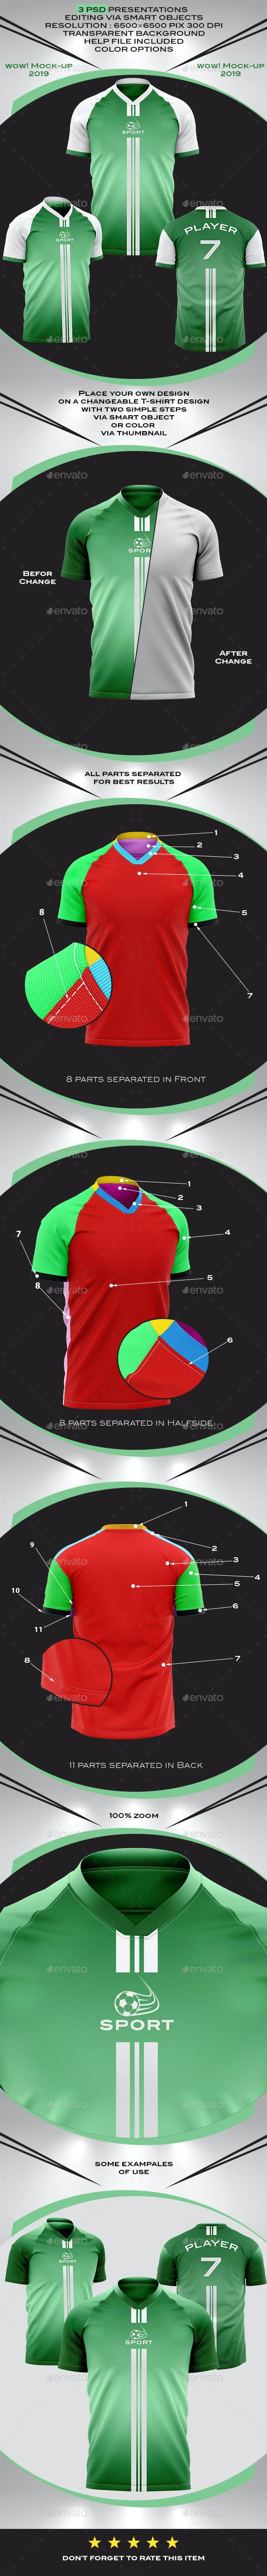 Men's Soccer Jersey V-Neck Mock-up - Product Mock-Ups Graphics